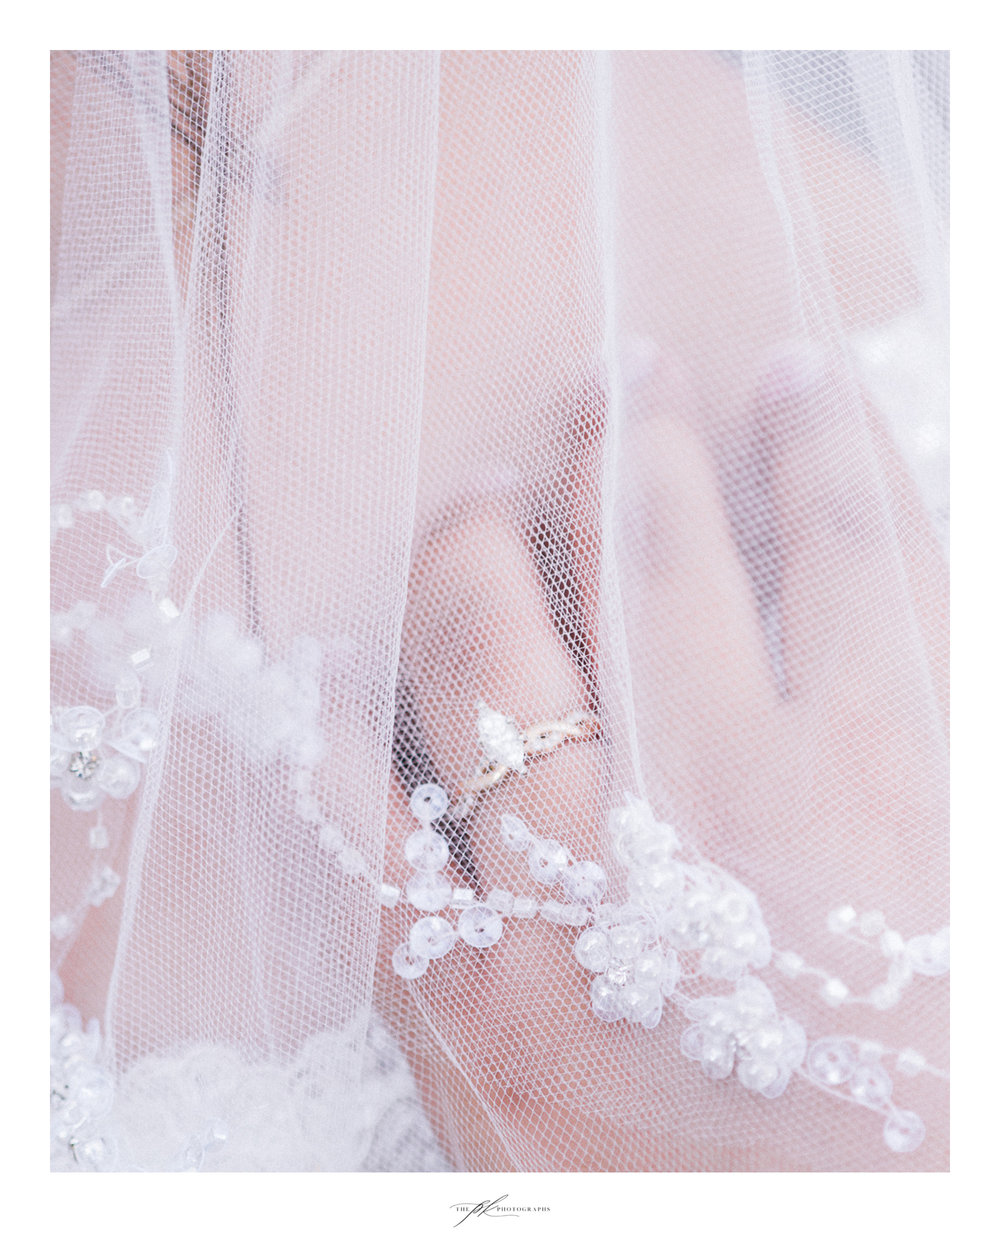 Emily's veil and custom designed engagement ring.